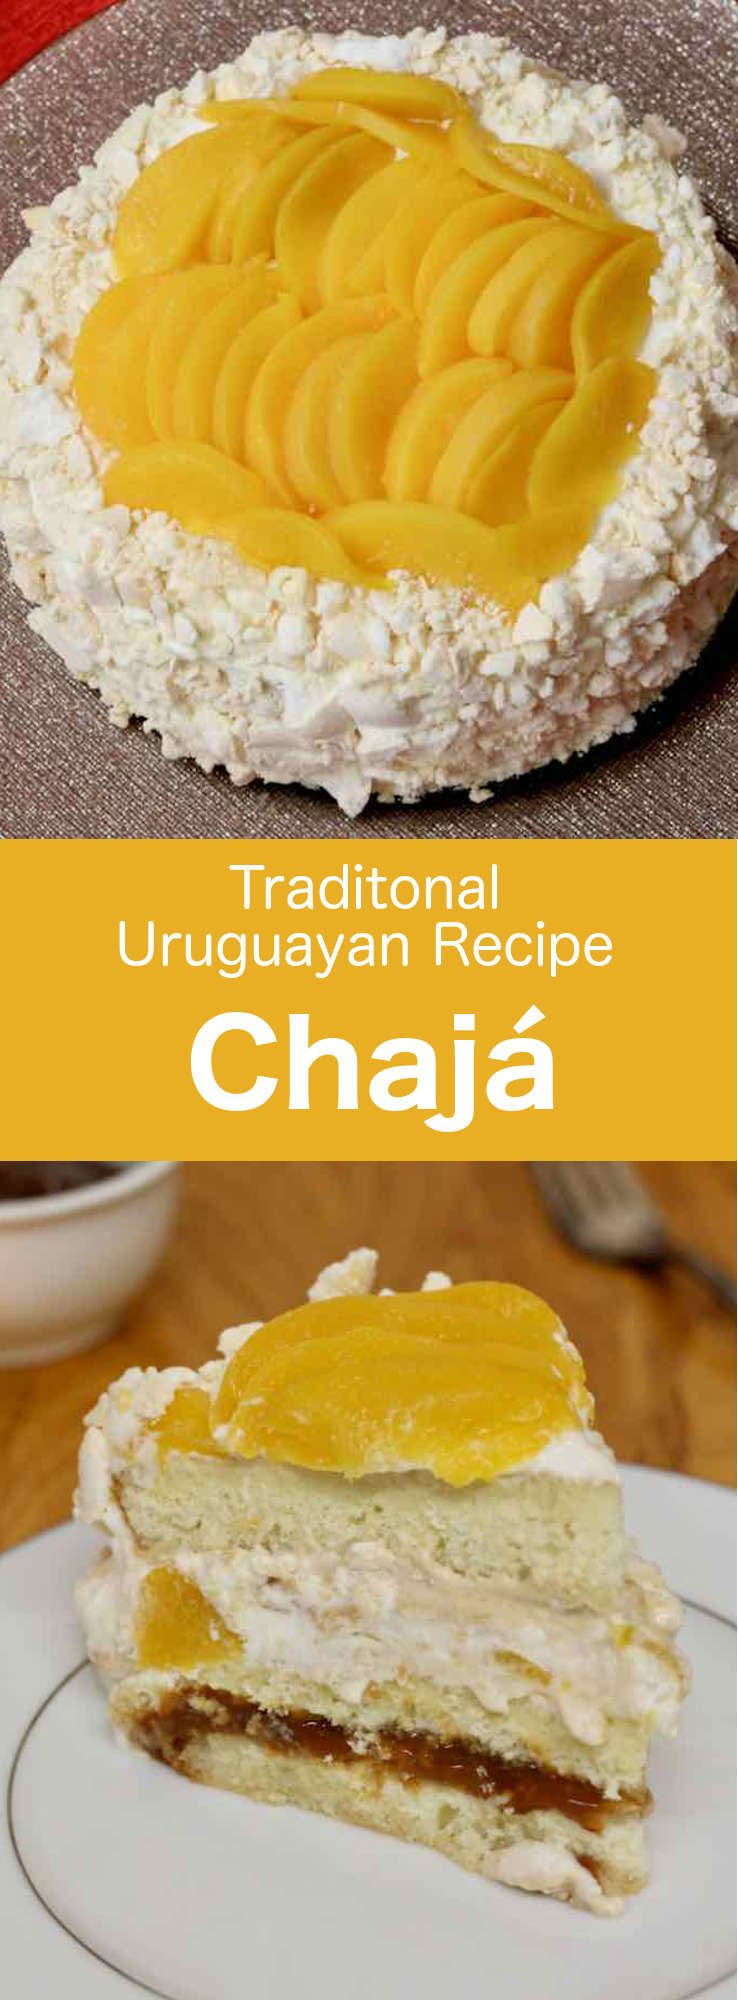 Chaja Is A Deliciously Light Dessert Typical Of Uruguayan Cuisine Consisting Of Meringue Sponge Cake Whipped Cream And Syrup Pe Desserts Light Desserts Food